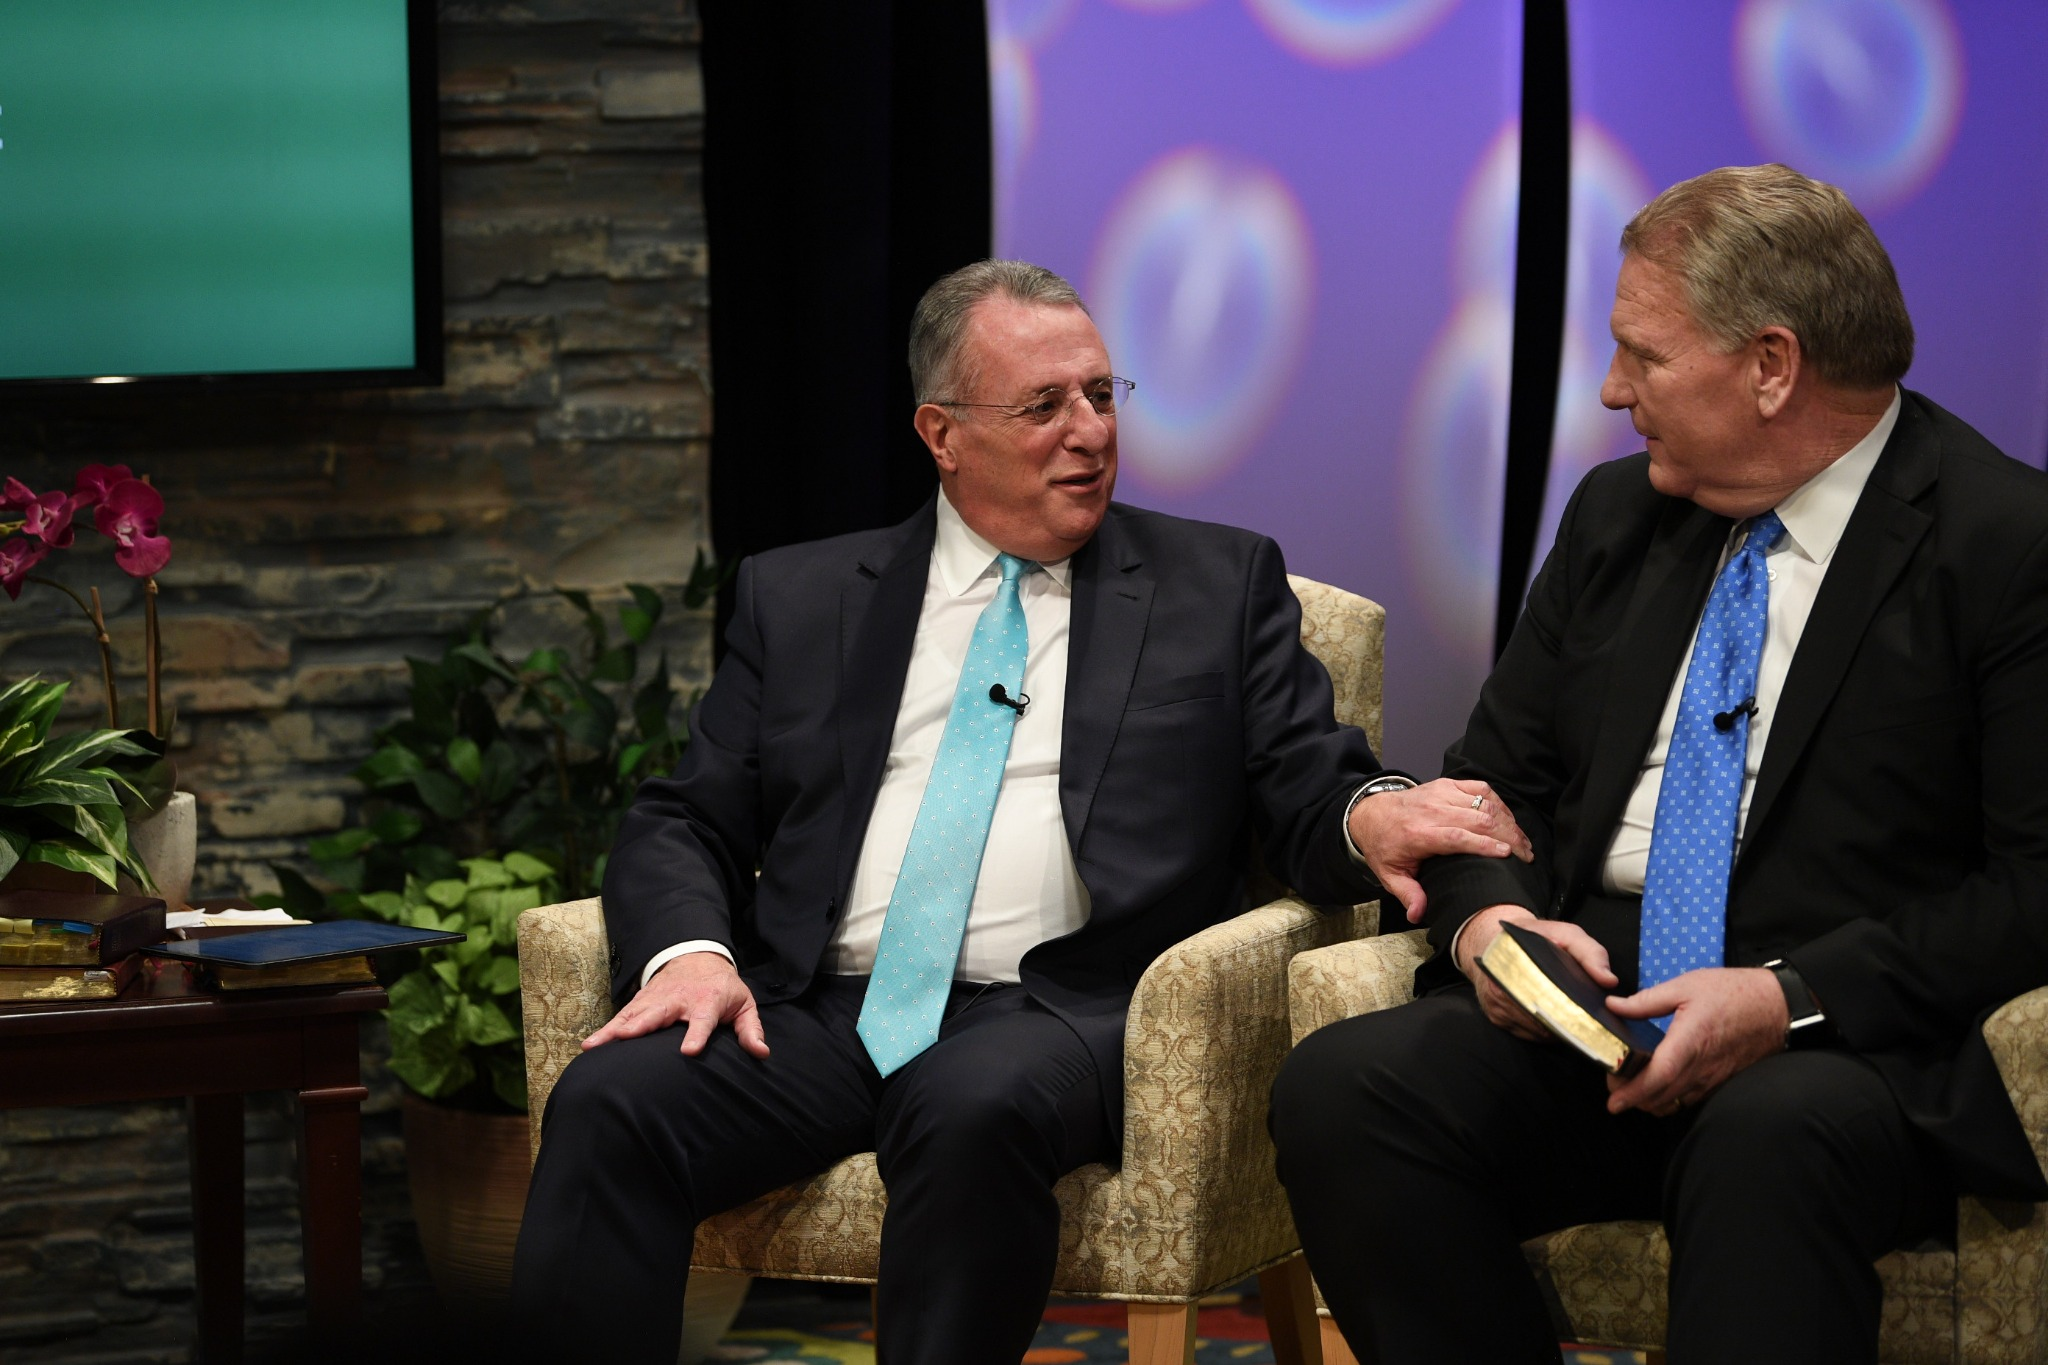 Elder Ulisses Soares of the Quorum of the Twelve Apostles and Elder Craig C. Christensen of the Seventy participate in a live 90-minute Worldwide Devotional Face to Face broadcast for young adults of The Church of Jesus Christ of Latter-day Saints on September 15, 2019.